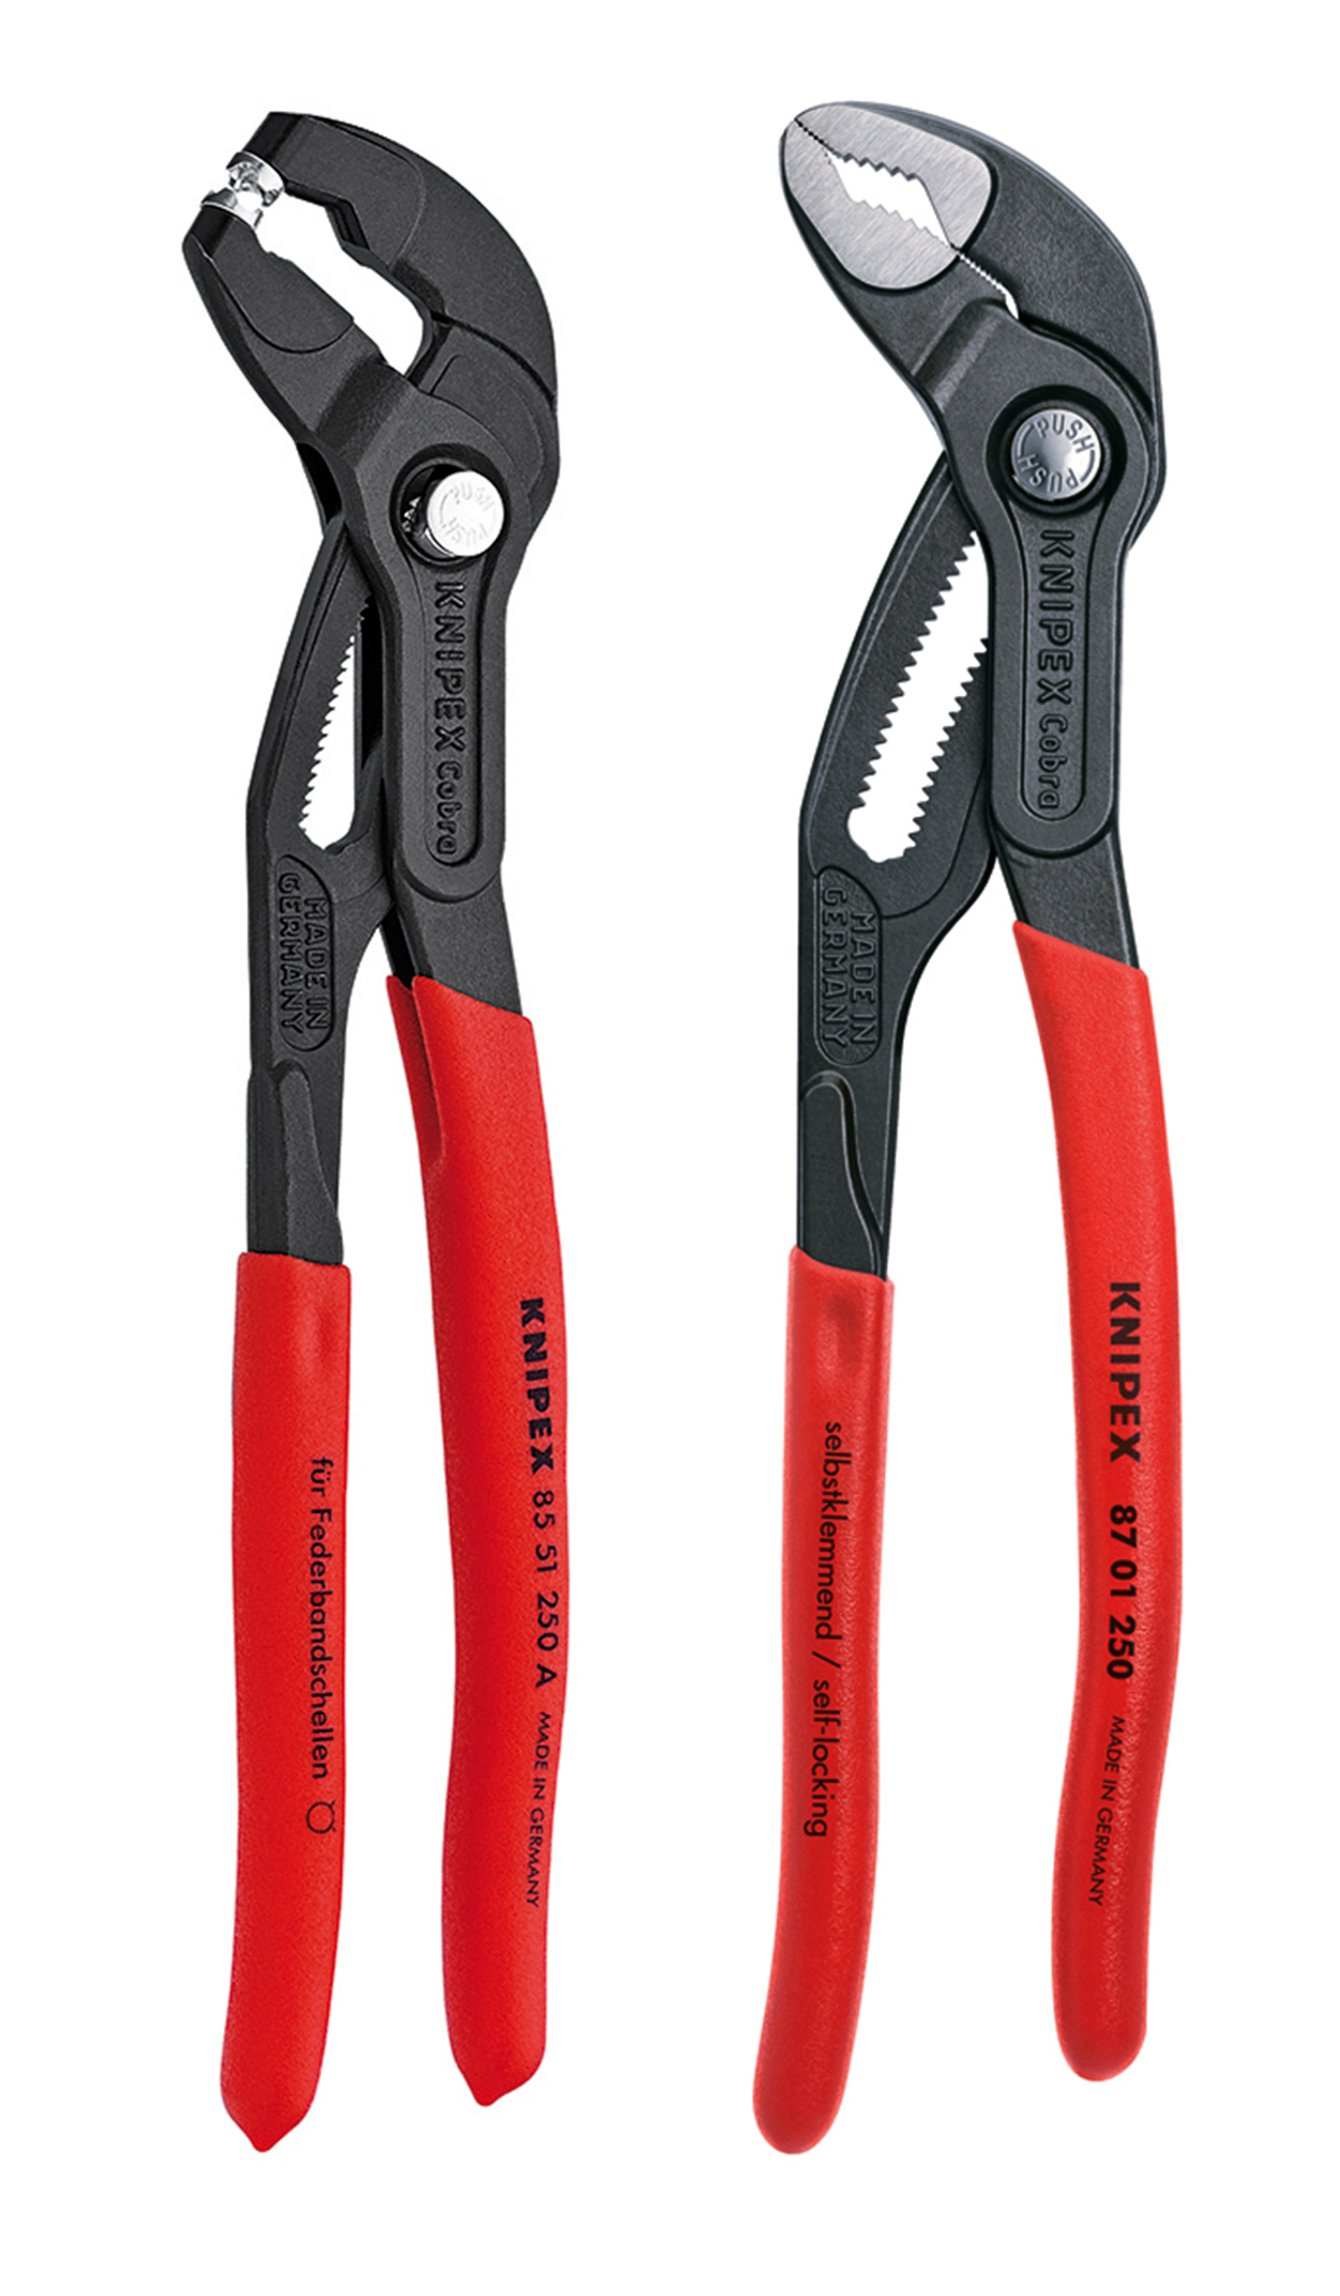 Knipex Tools 9K 00 80 104 US 10'' Cobra and Hose Clamp Pliers Set (2 Piece) by KNIPEX Tools